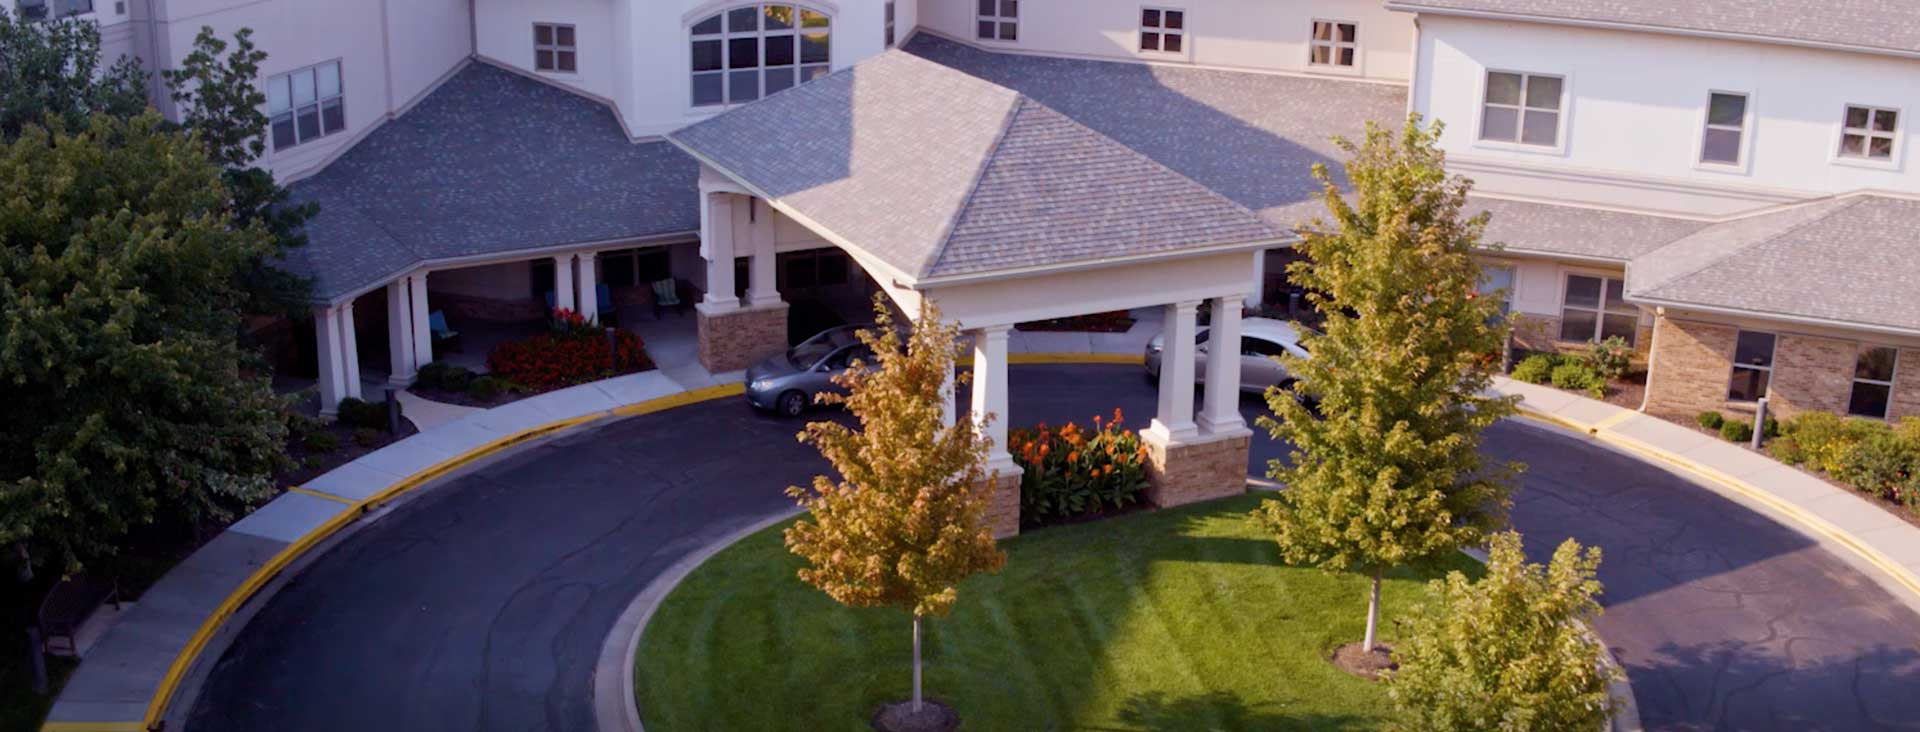 Village Shalom Upscale Senior Living in Overland Park KS